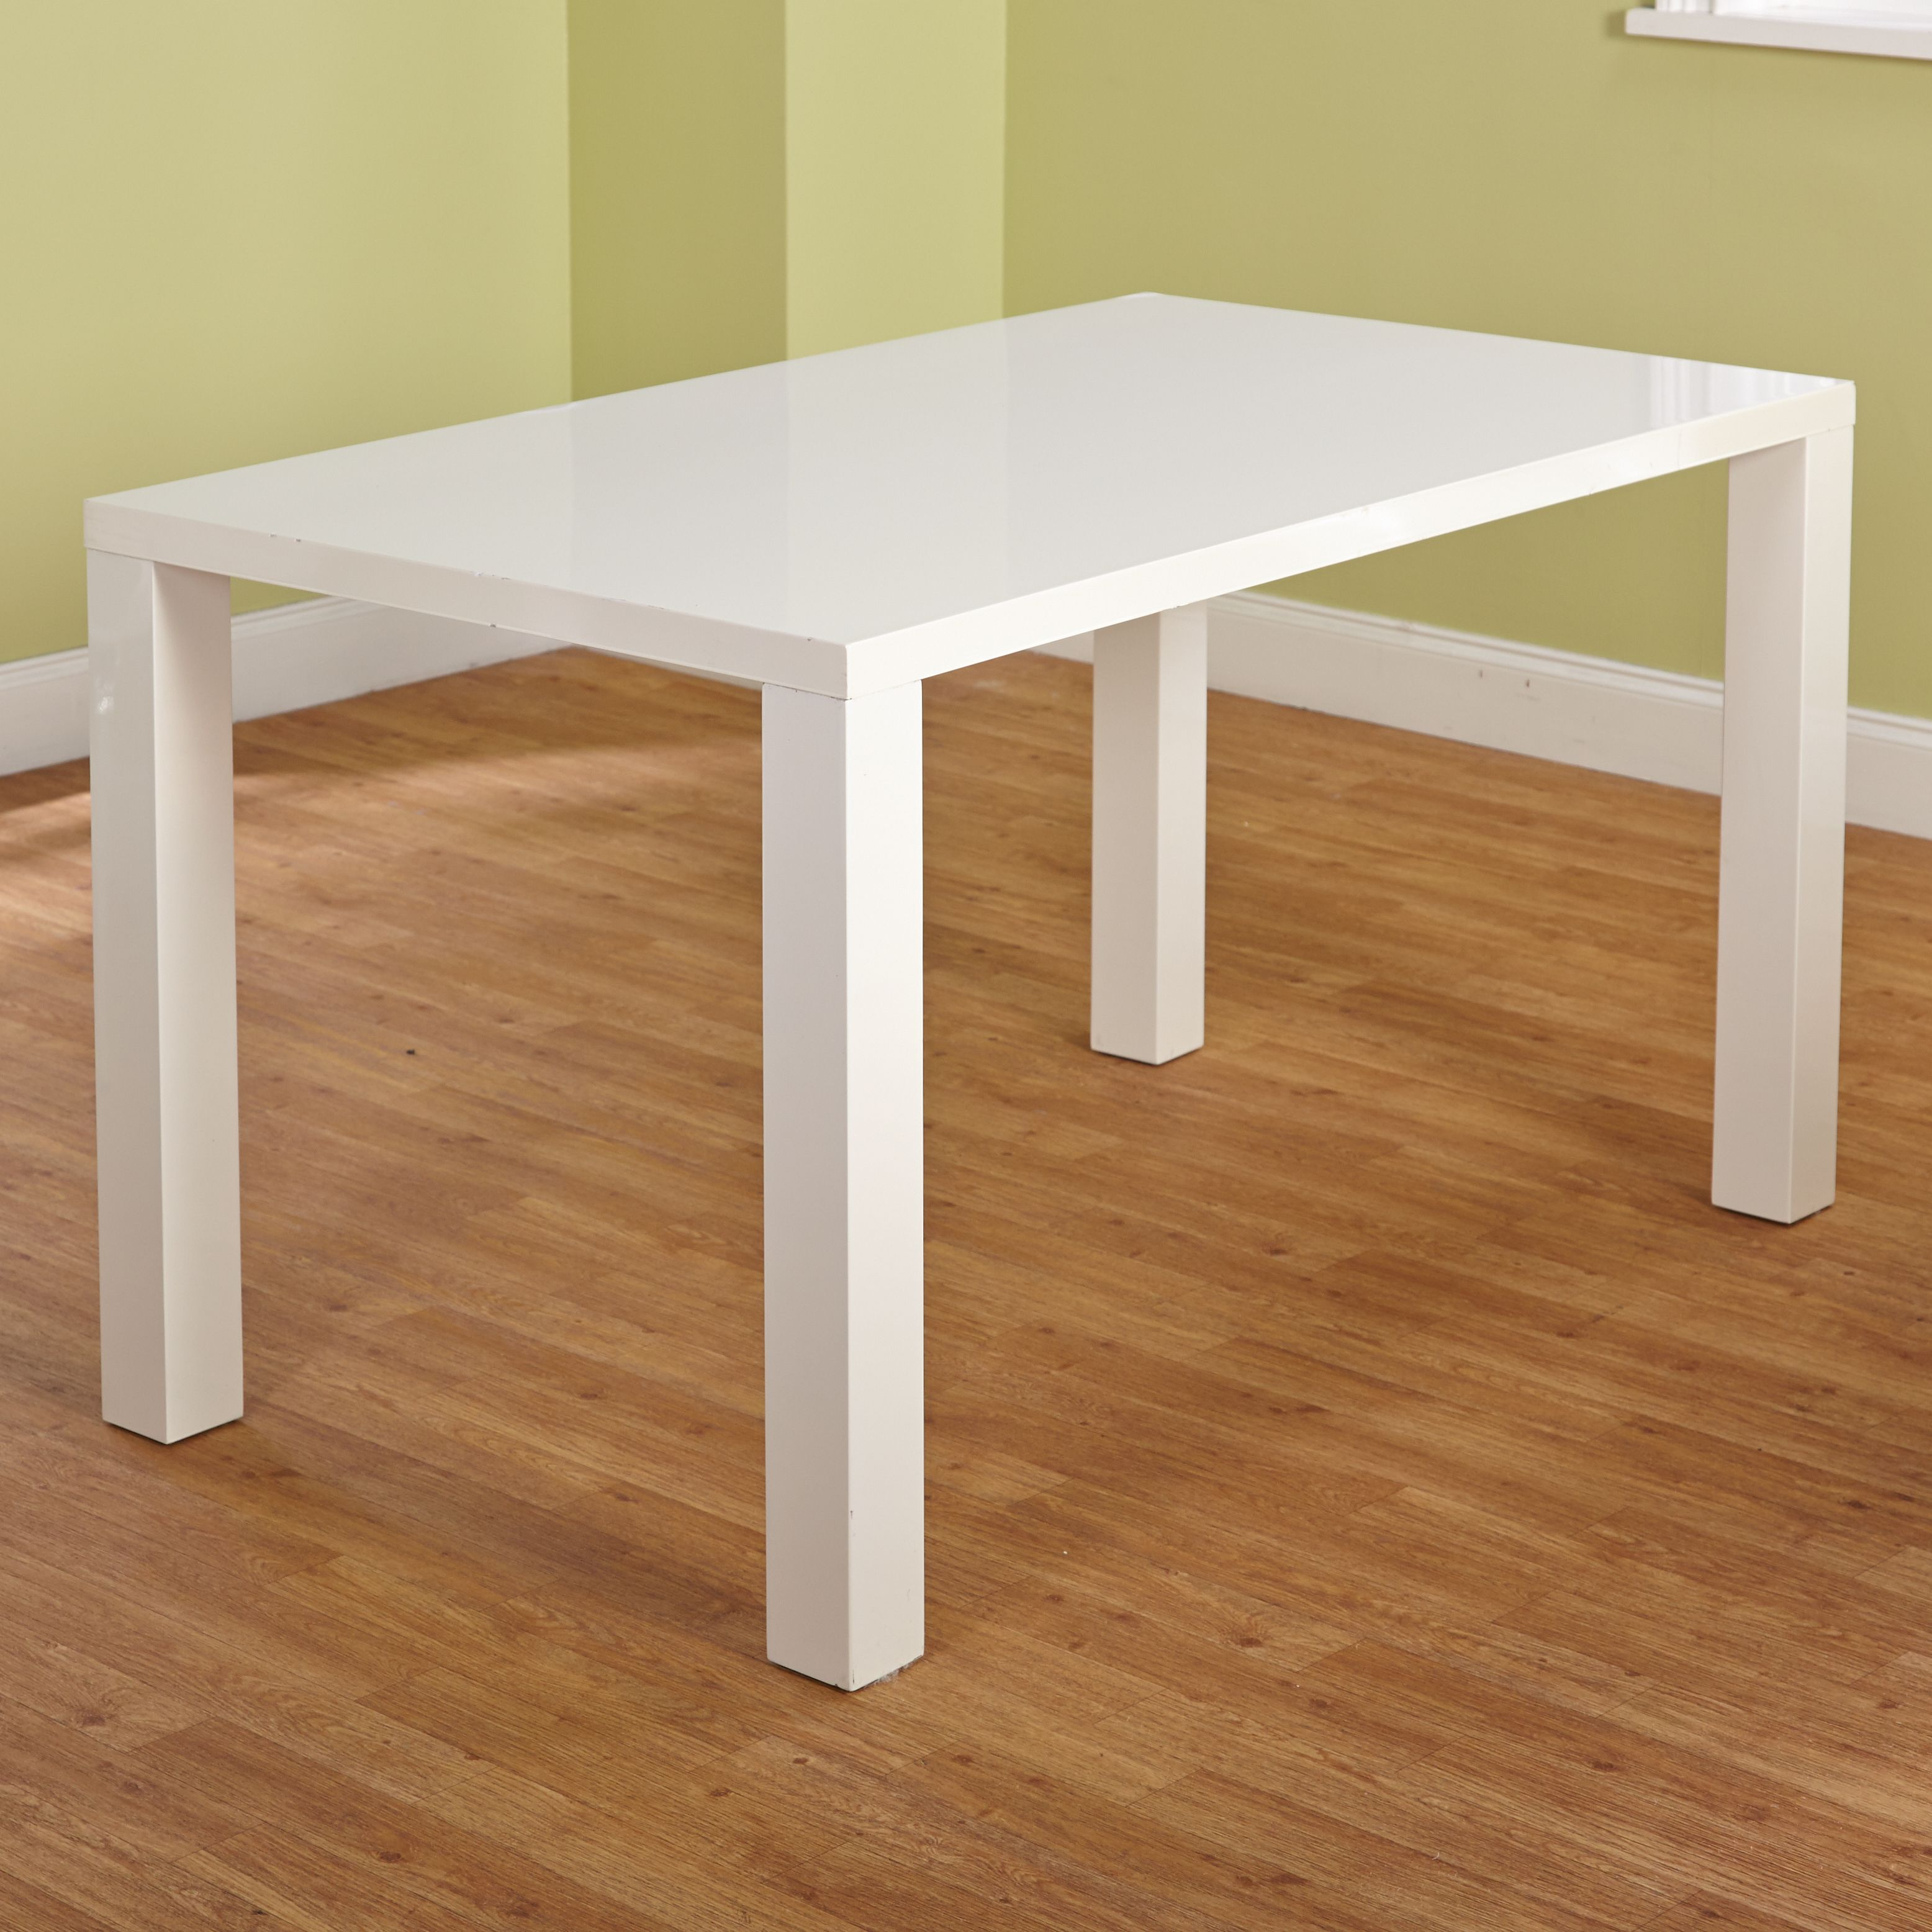 Incorporate Modern Style Into Your Dining Decor With This Felix Table Features